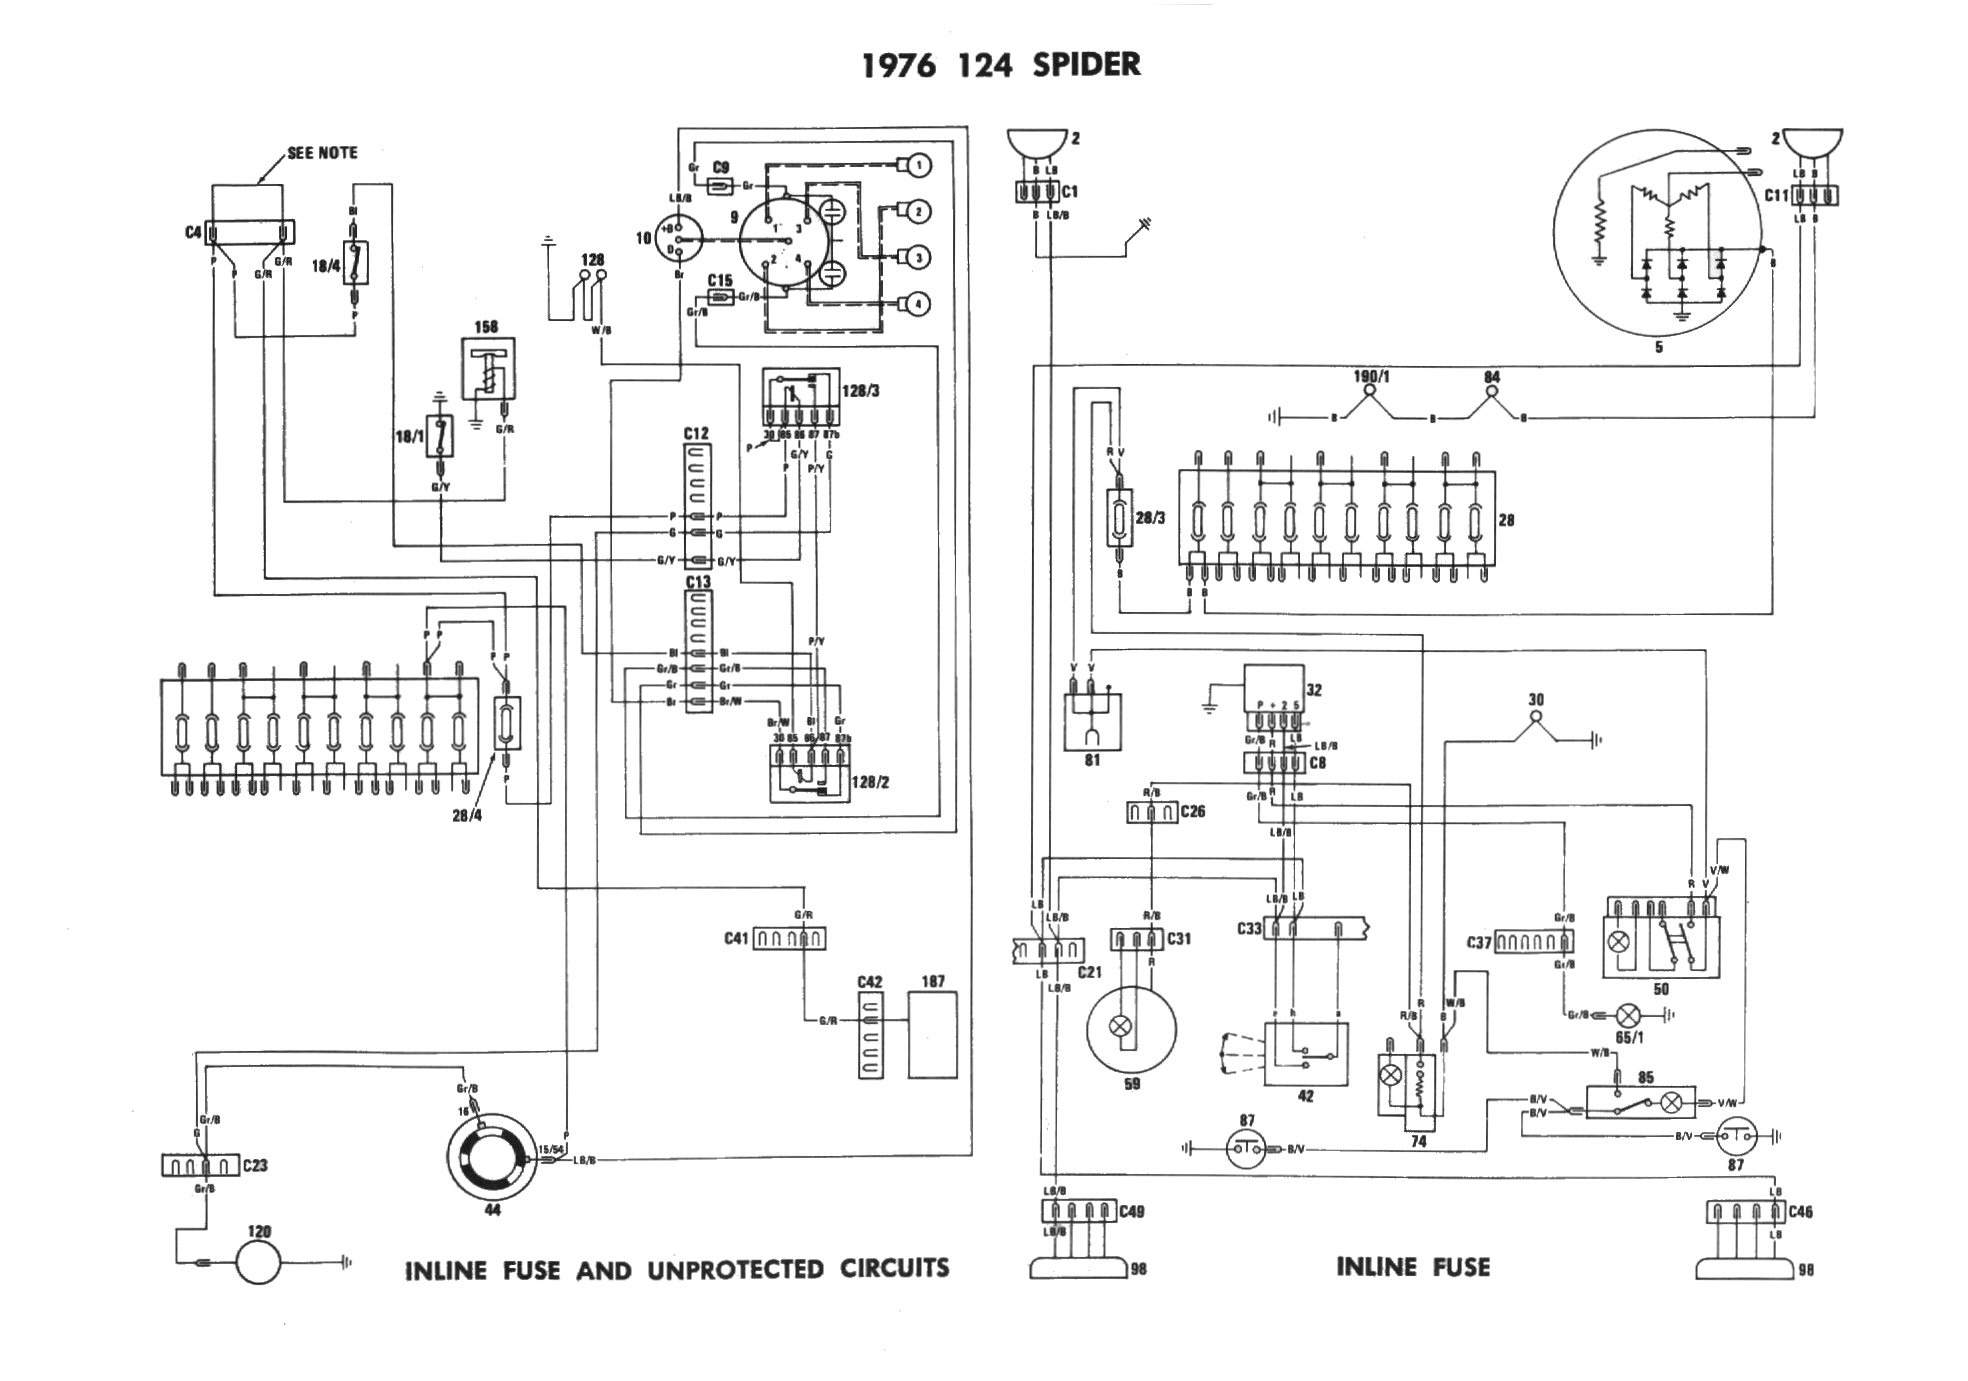 1975 Fiat 124 Spider Wiring Diagram Free Wiring Diagram